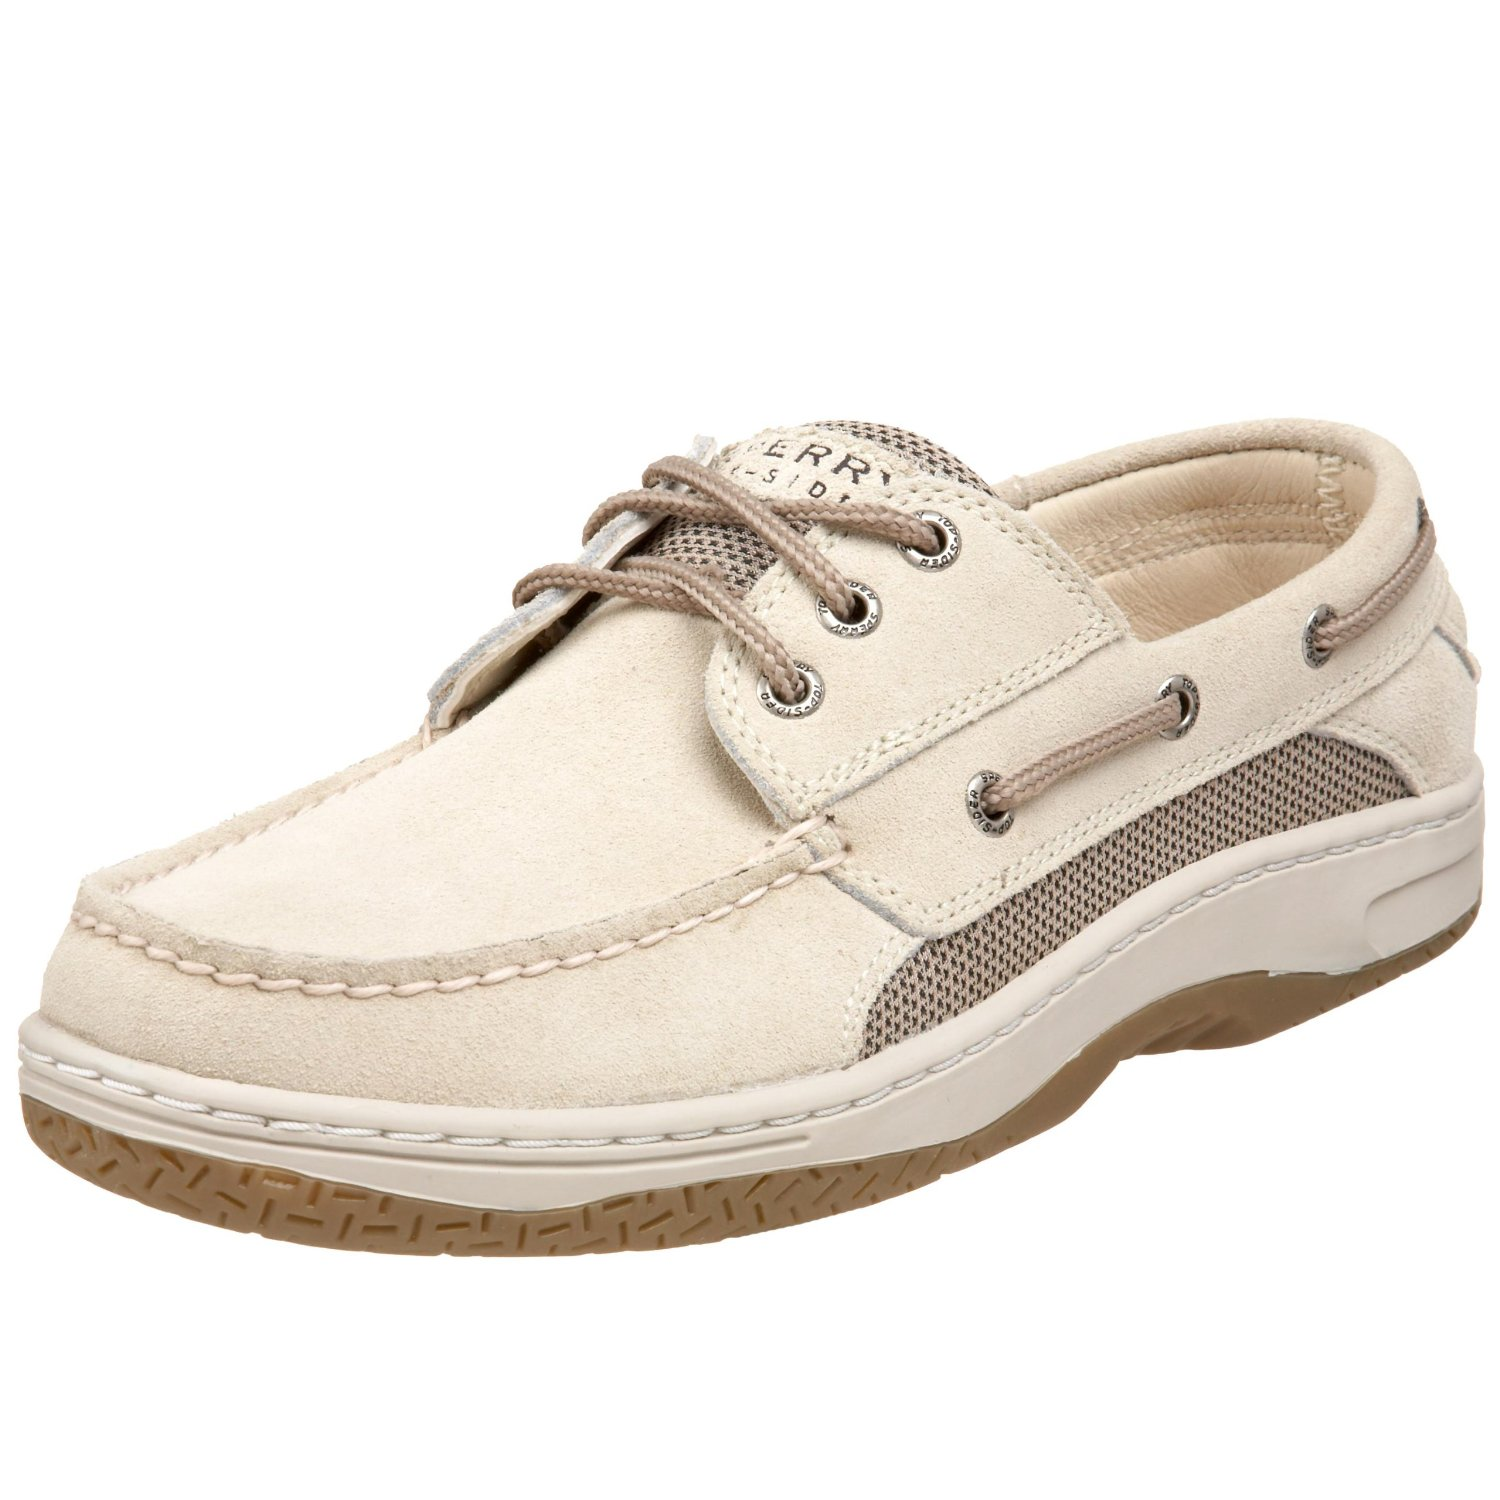 White Sperry Top Sider Boat Shoes